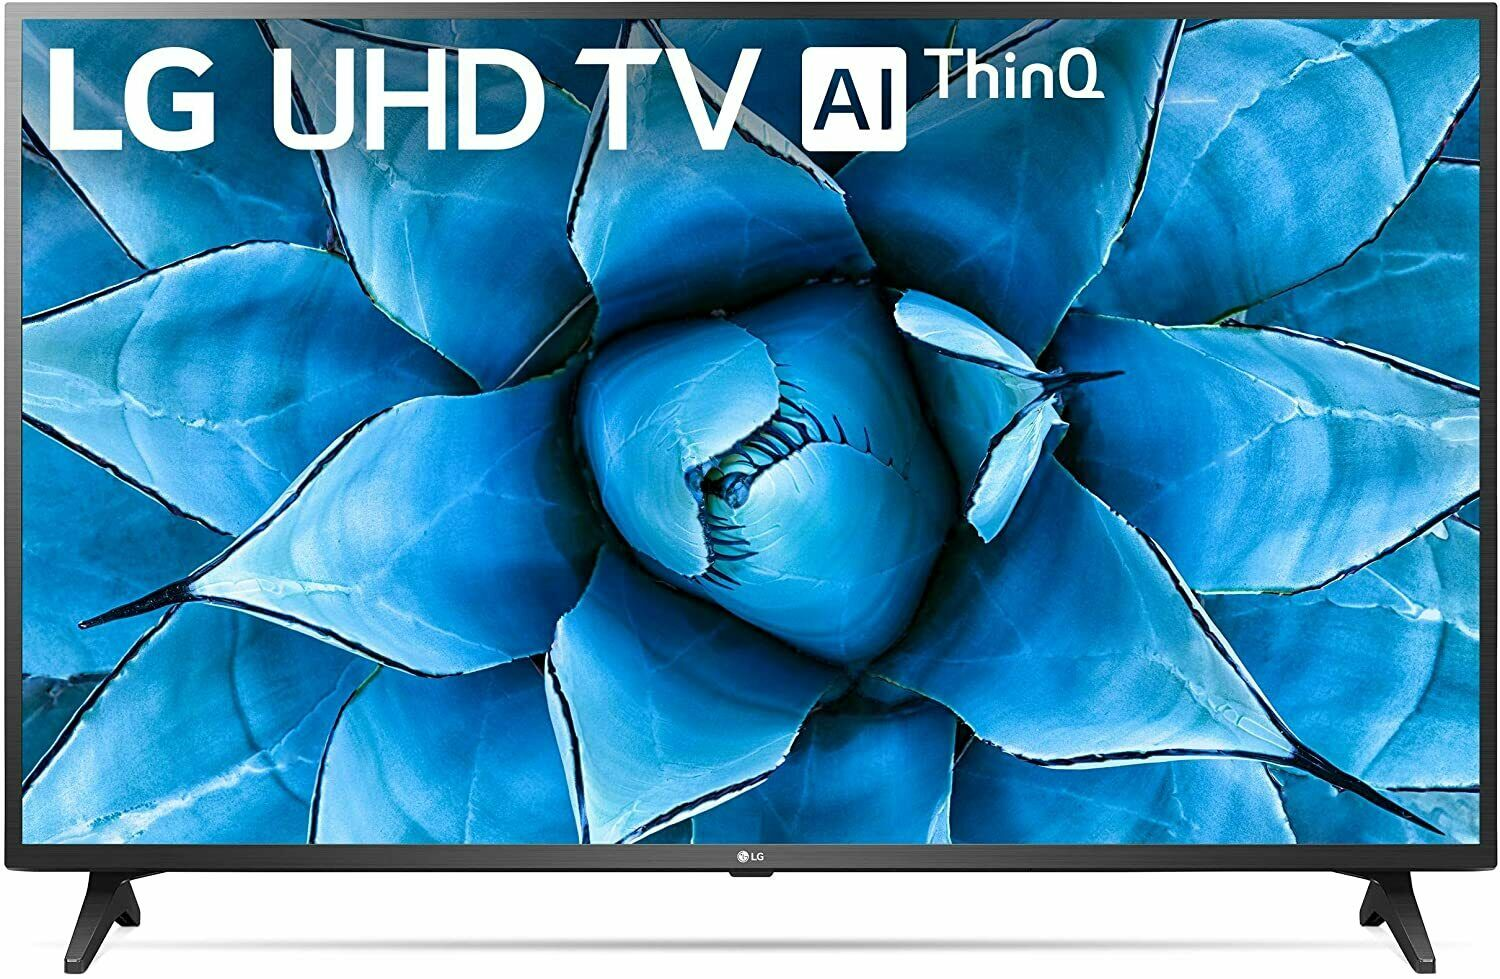 LG 65 4K Smart UHD HDR TV with Google Assistant & Alexa Built-in - 65UN7300. Available Now for 779.95